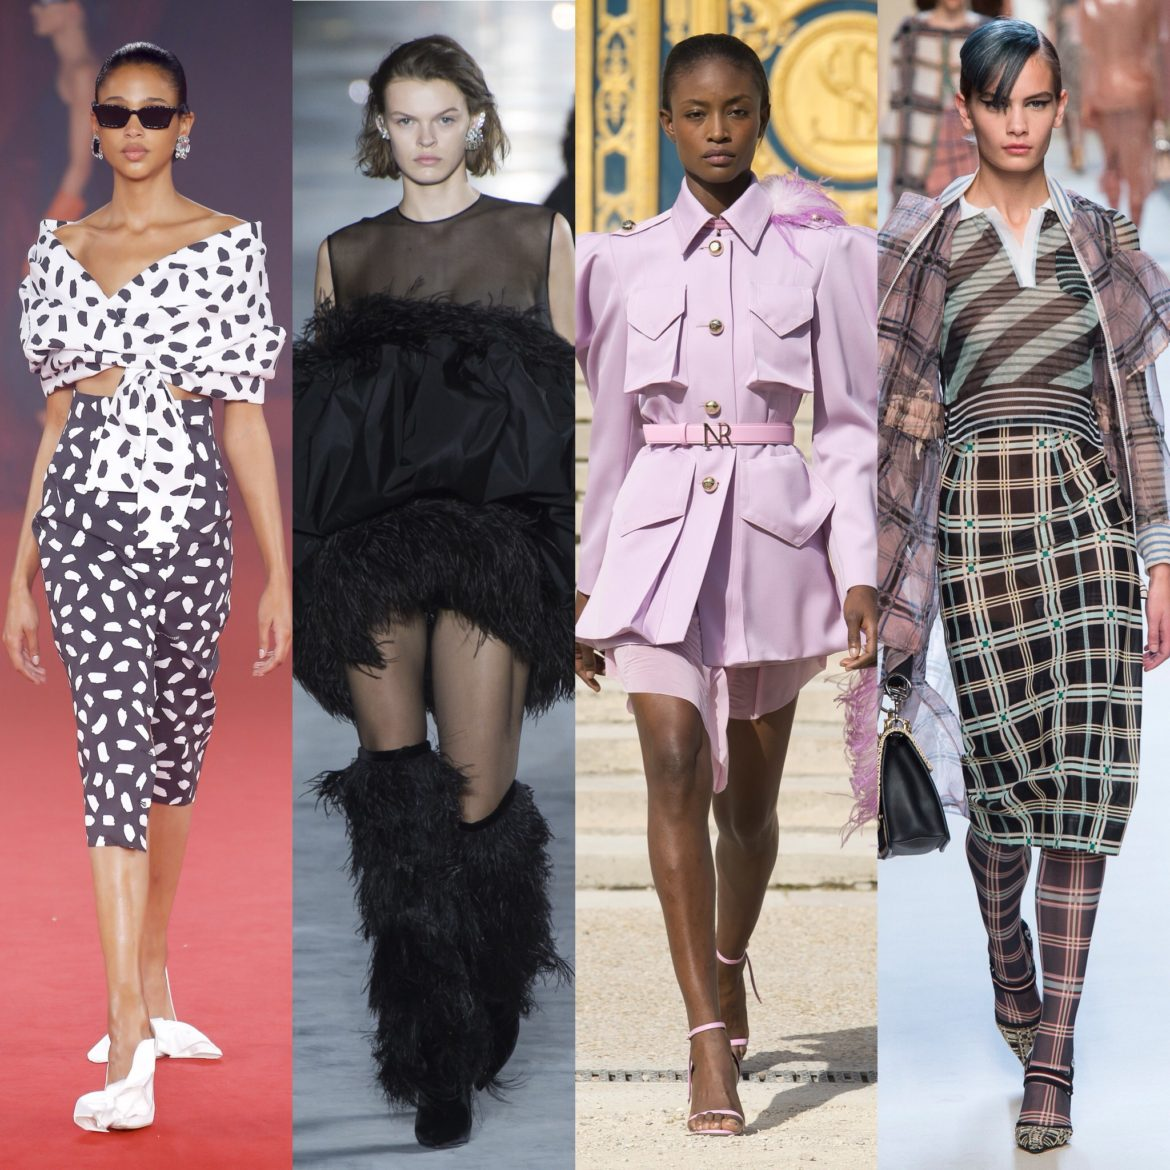 Spring 2018 Trends: Fashion Week coverage - Graphic Black and White - Saint Laurent - Off-White - Balmain. More Spring 2018 Fashion Week coverage on Houseofcomil.com. Pictures from Vogue